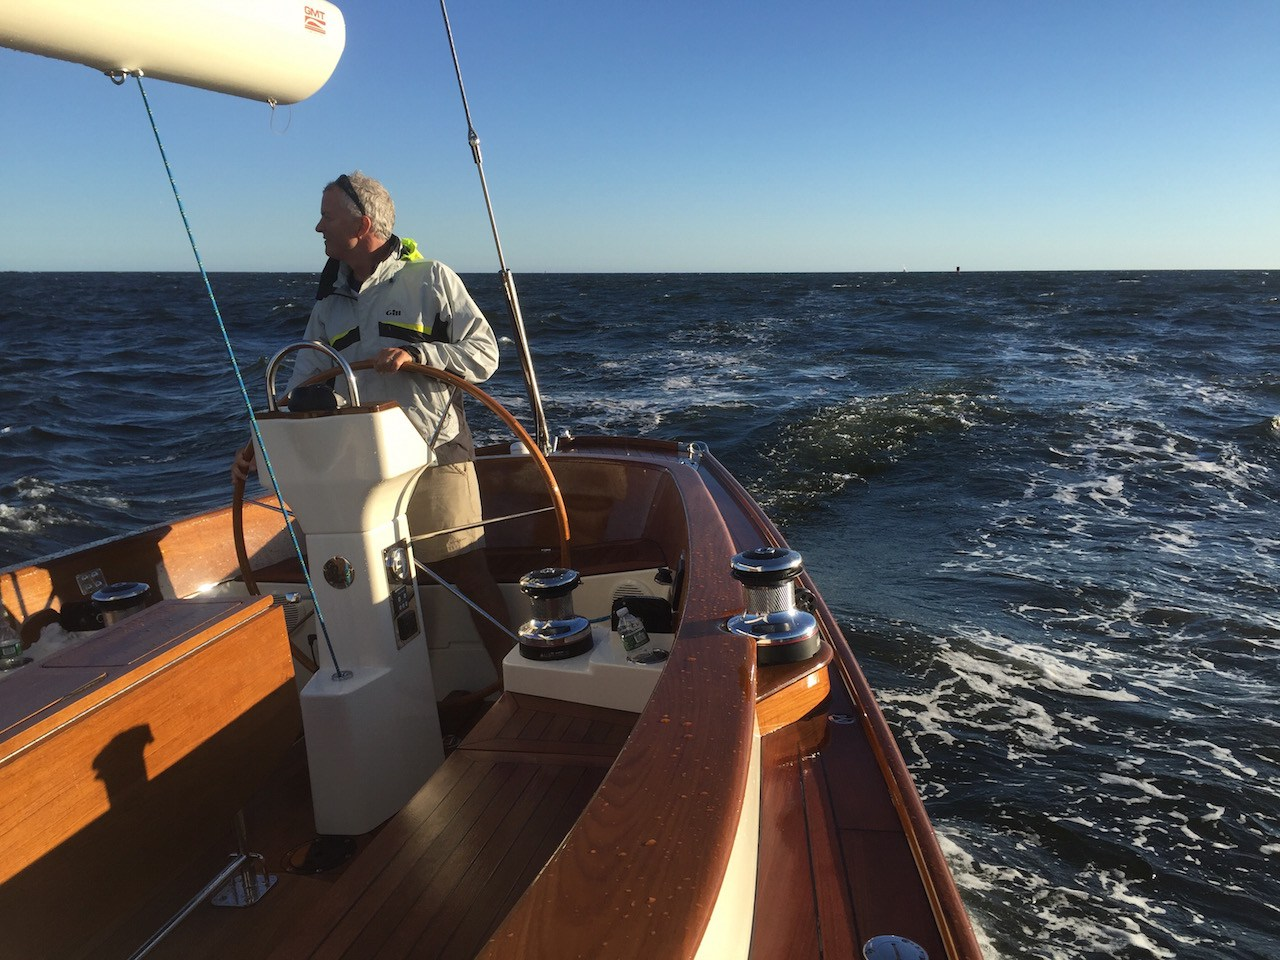 Morris Yacht's Cuyler Morris doing what we all love so much. Sailing a good boat, in a good breeze with a good friend.